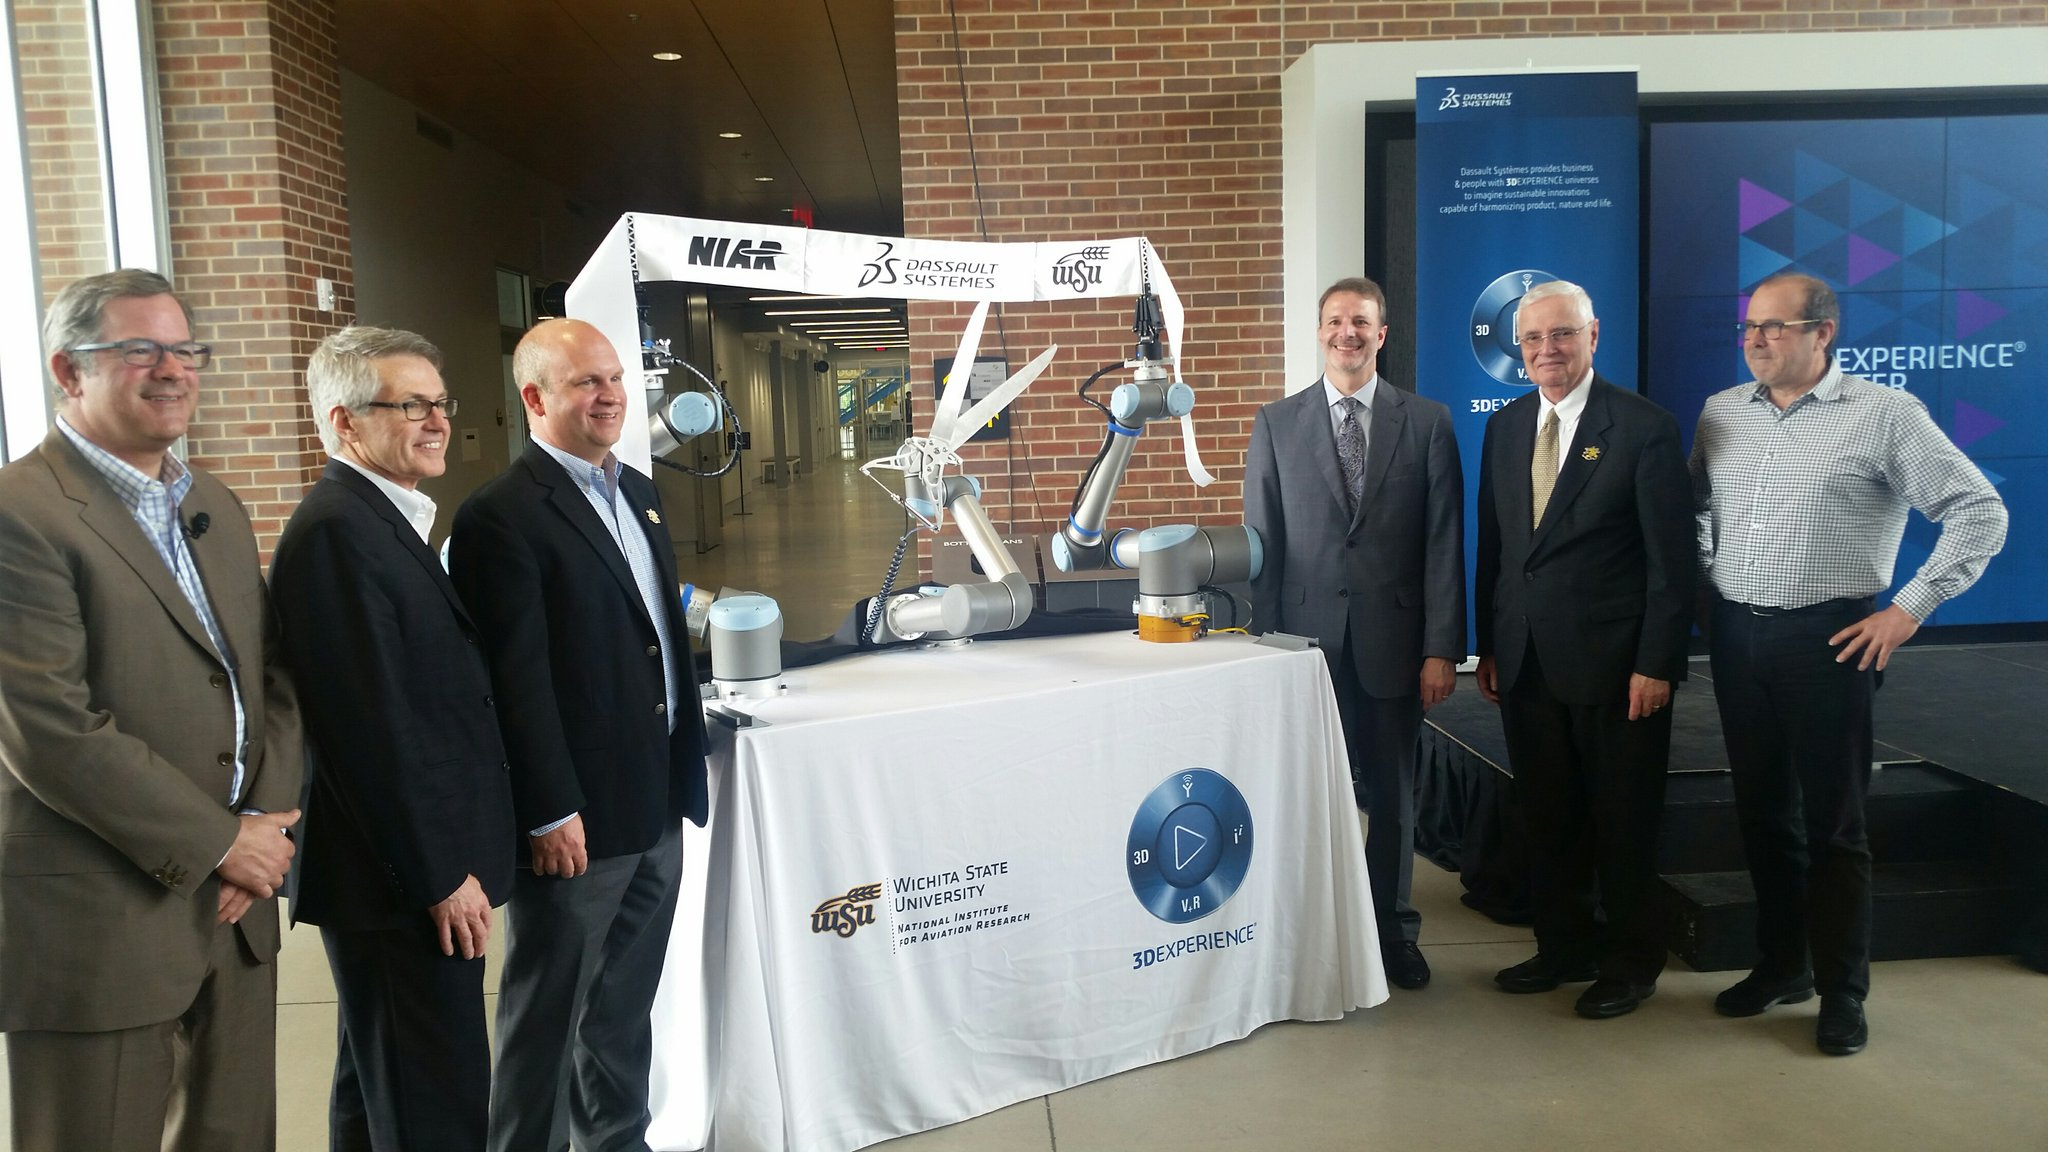 Robots were employed to both hold and cut the ribbon at Dassault's pening ceremony at WSU. Photo via U.S. Economic Development Administration.